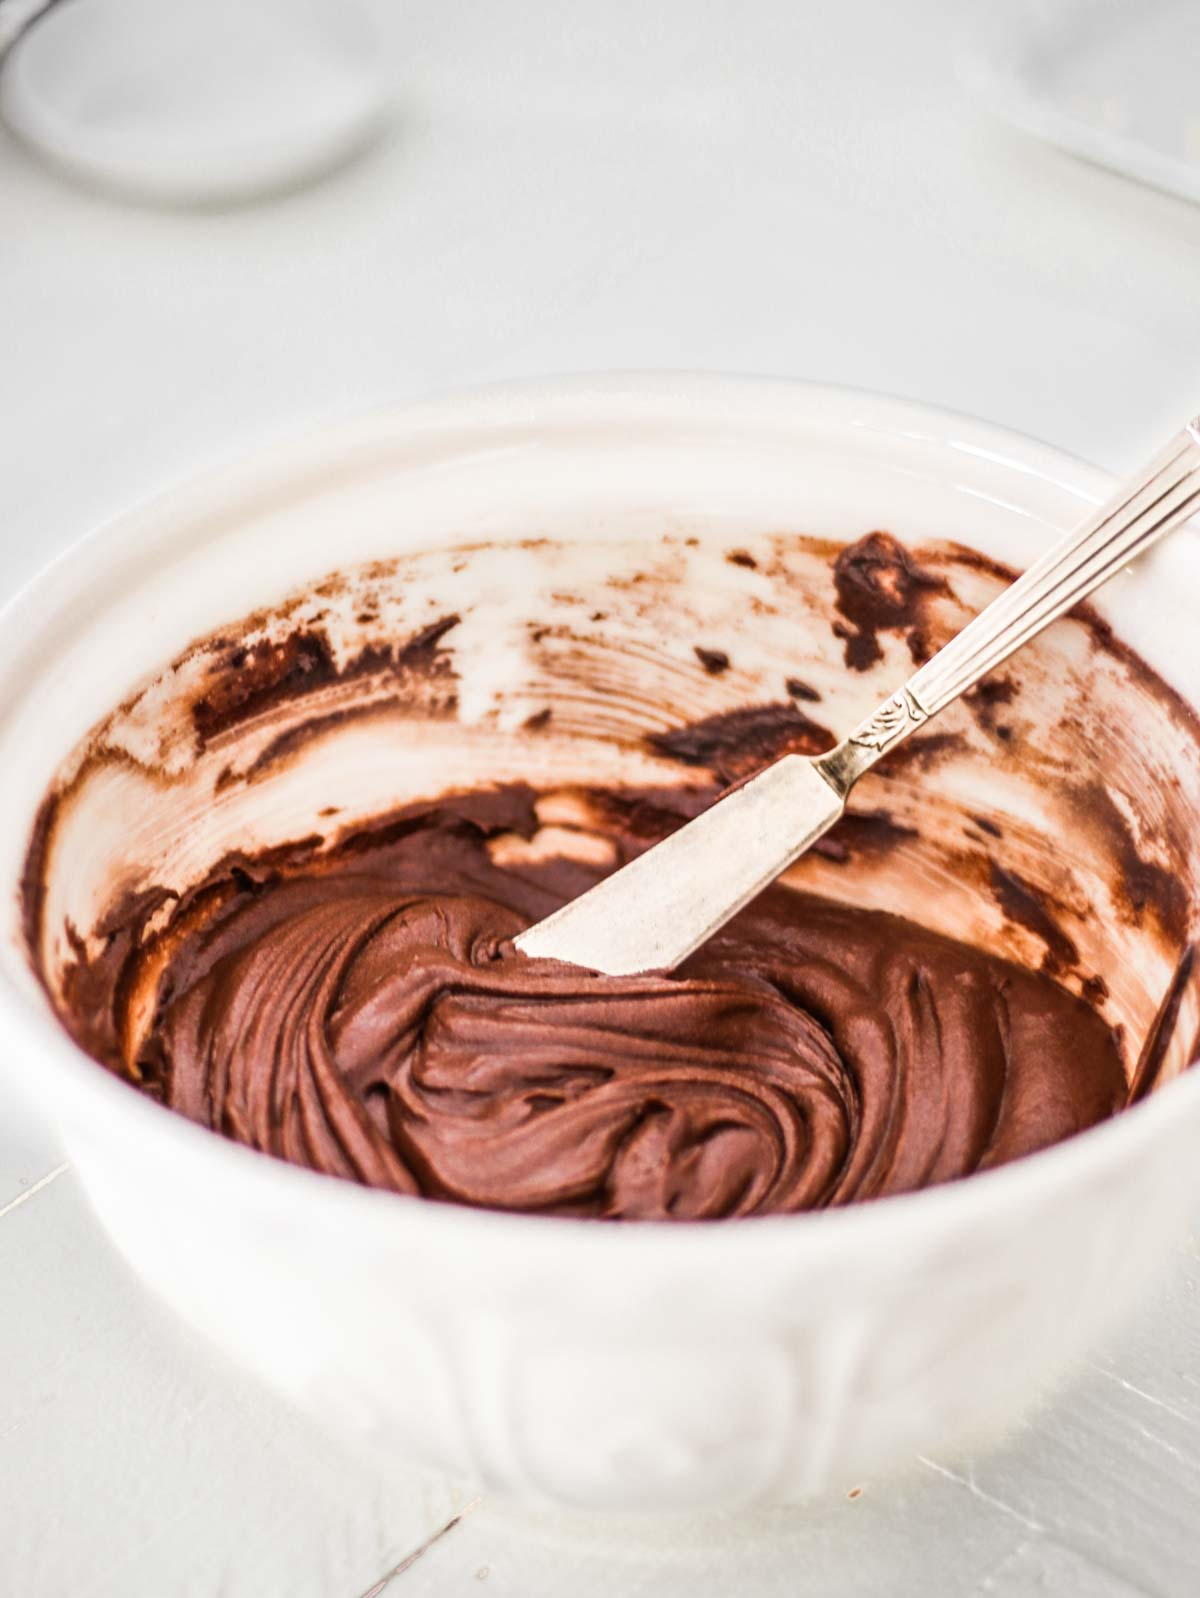 One Minute Chocolate Frosting